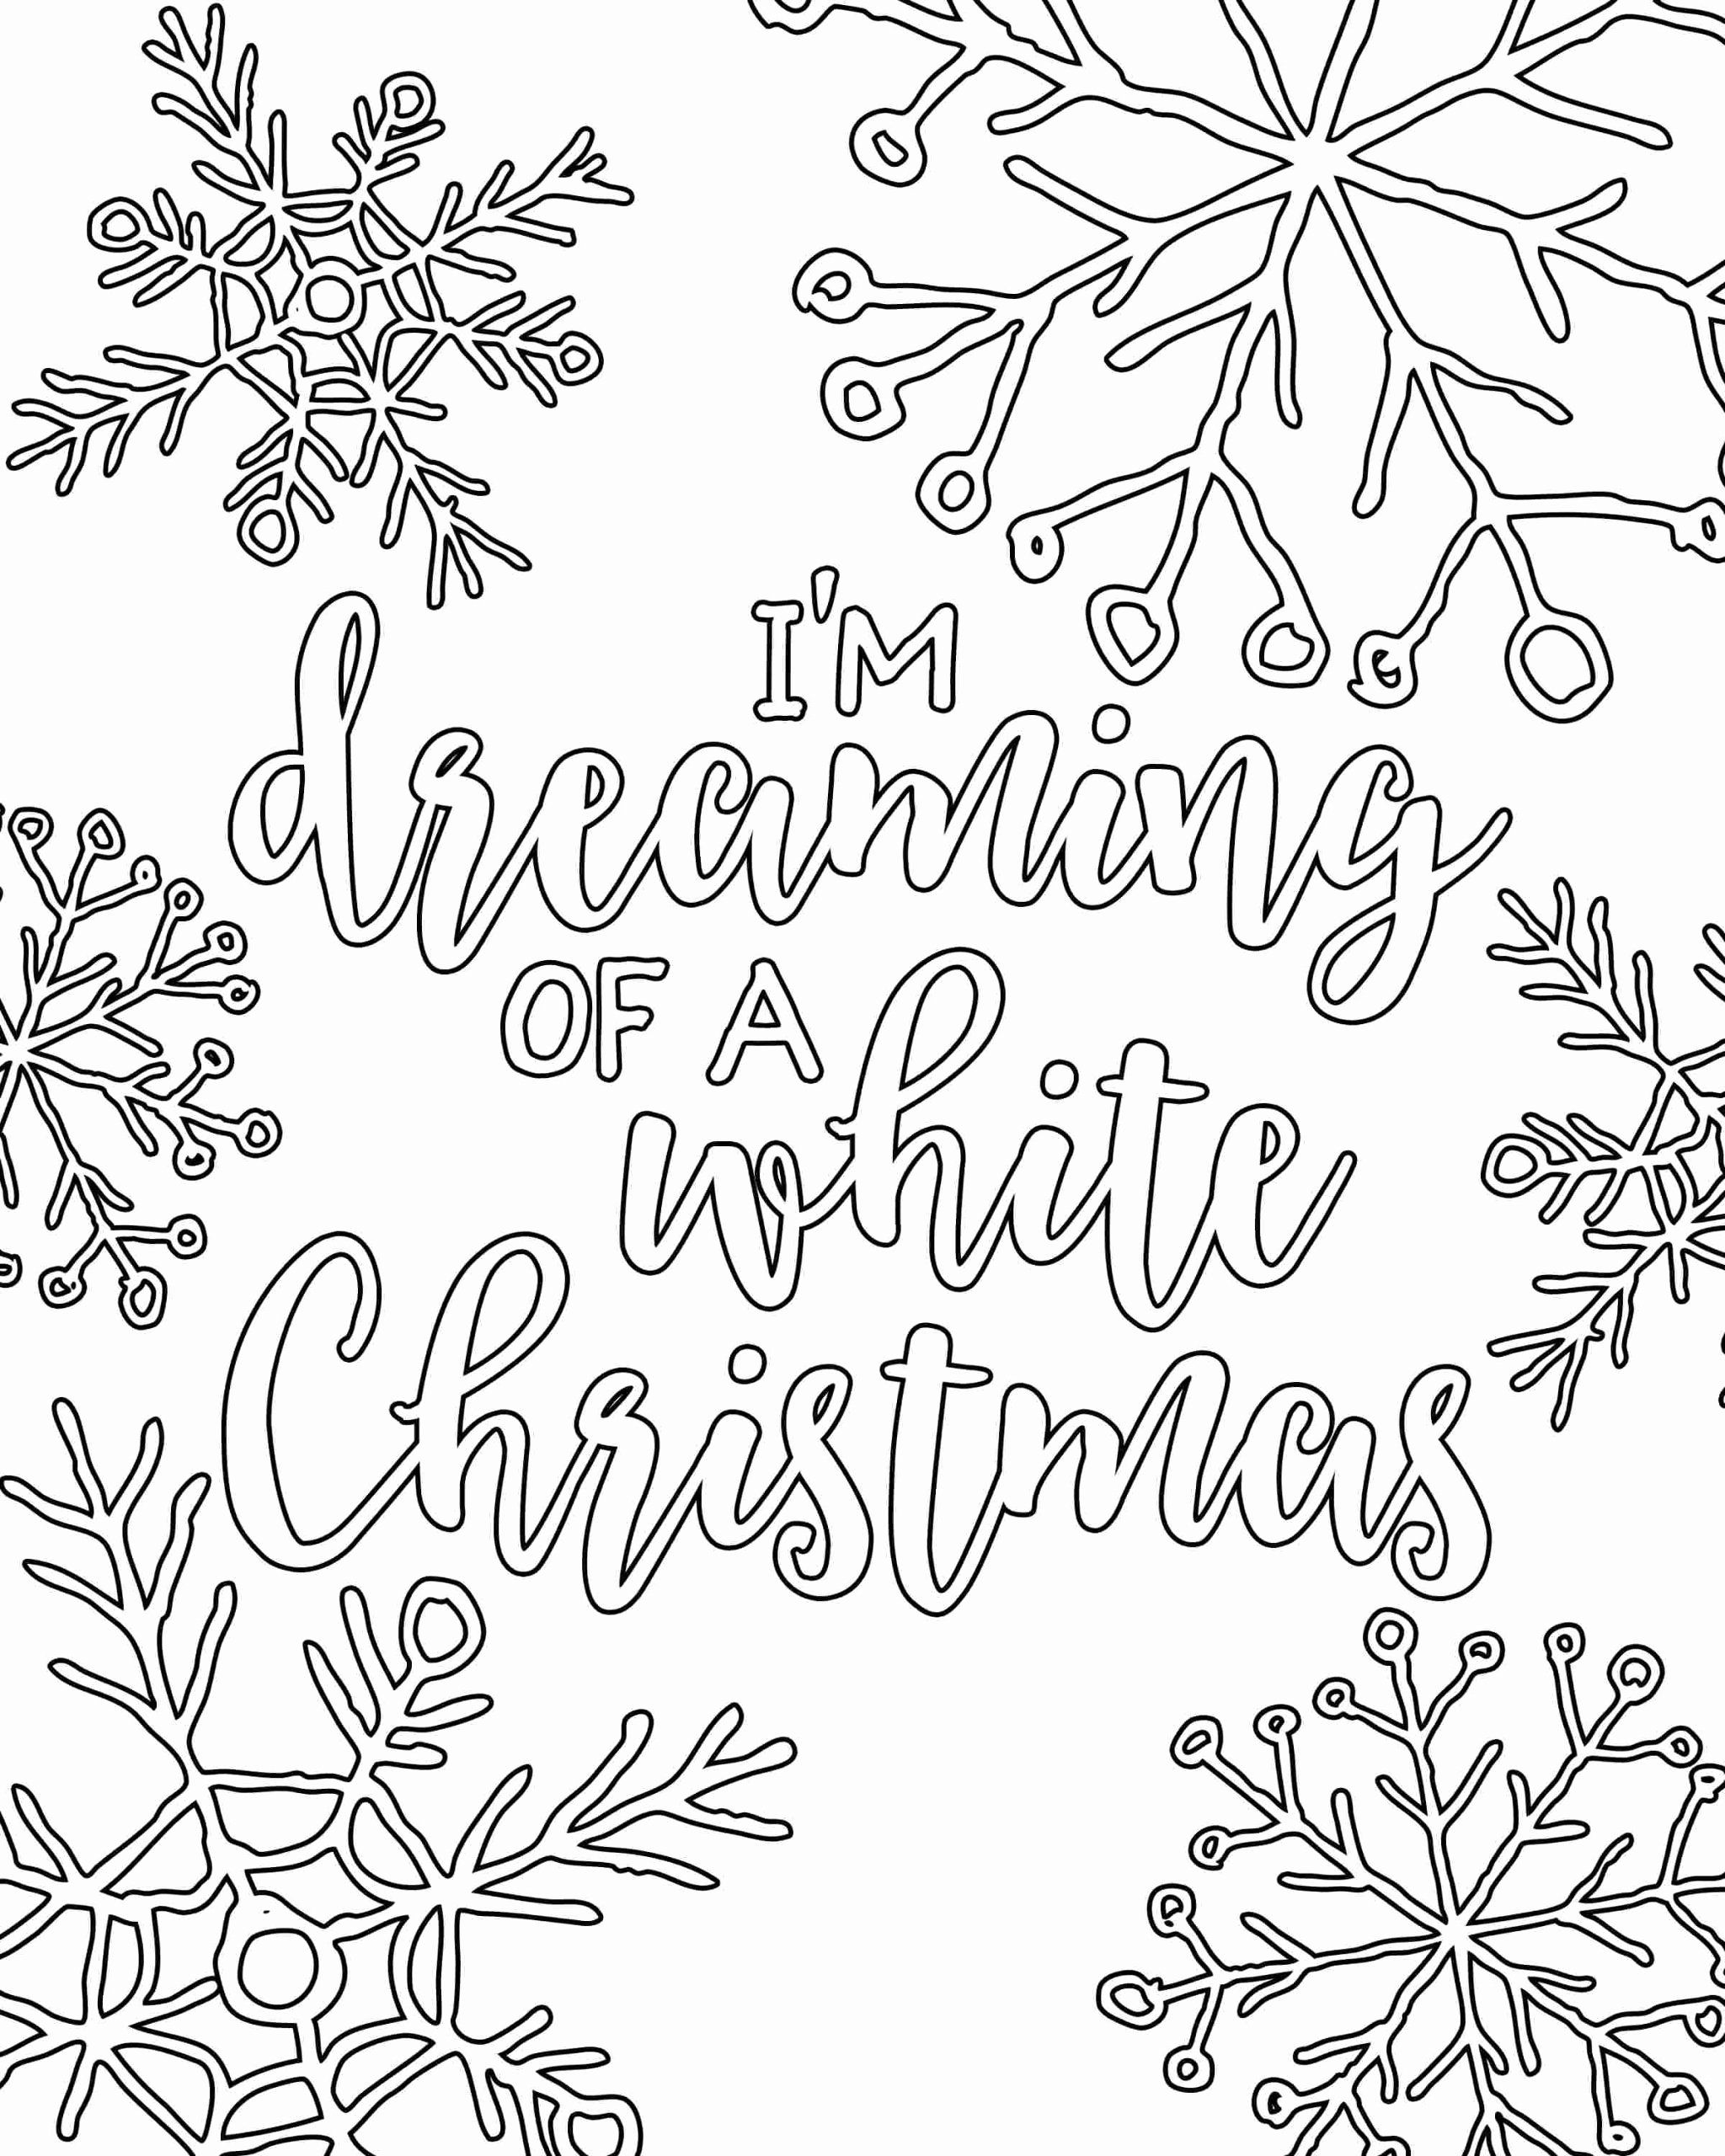 Printable Christmas Coloring Pages For Adults Awesome Coloring P Printable Christmas Coloring Pages Free Christmas Coloring Pages Christmas Coloring Printables